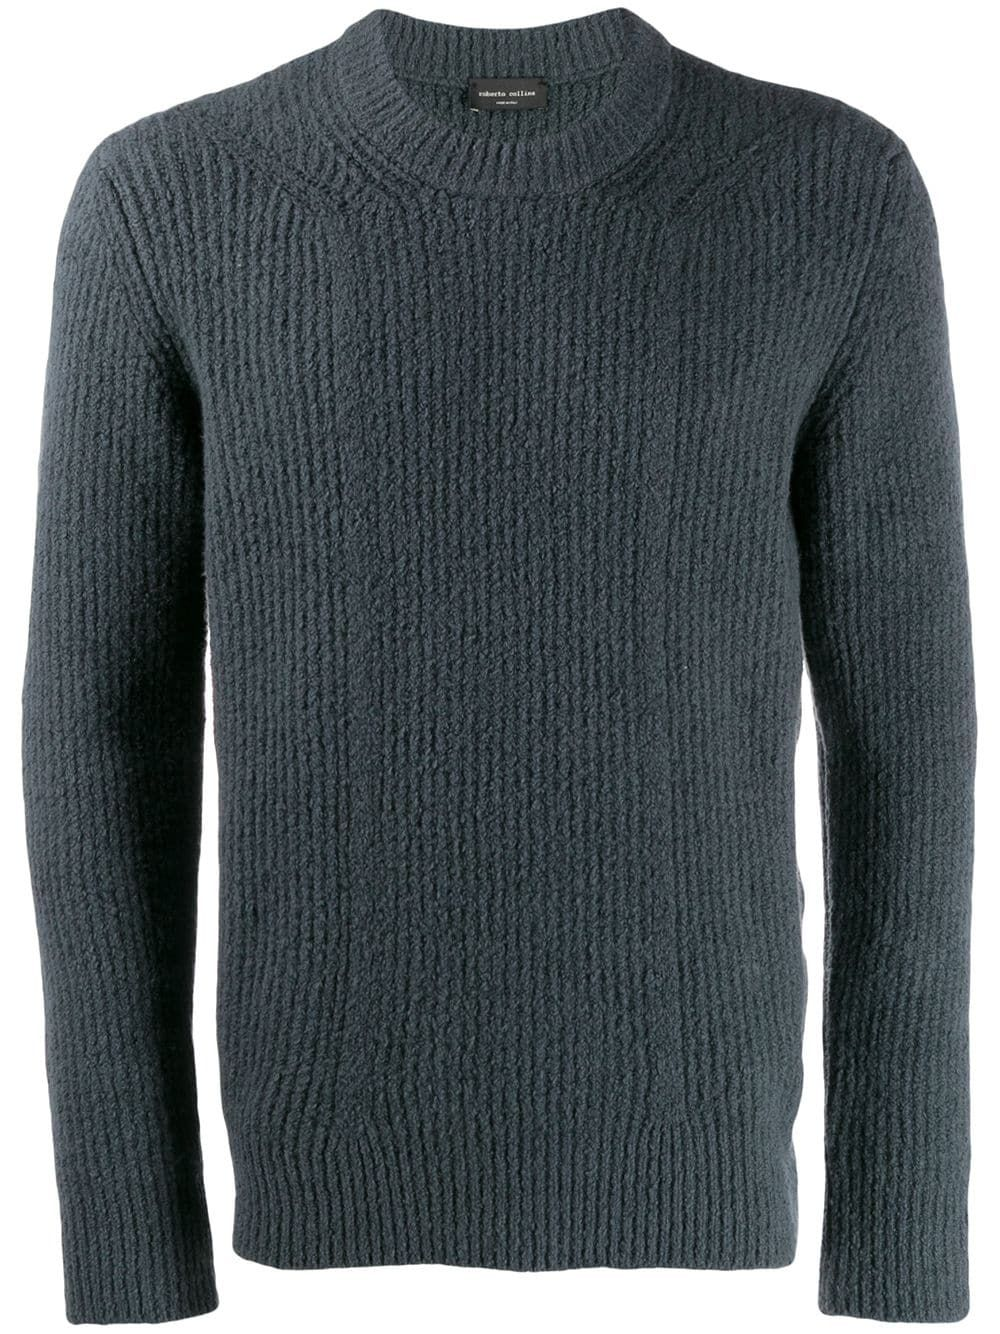 Roberto Collina Chunky Knit Jumper #chunkyknitjumper